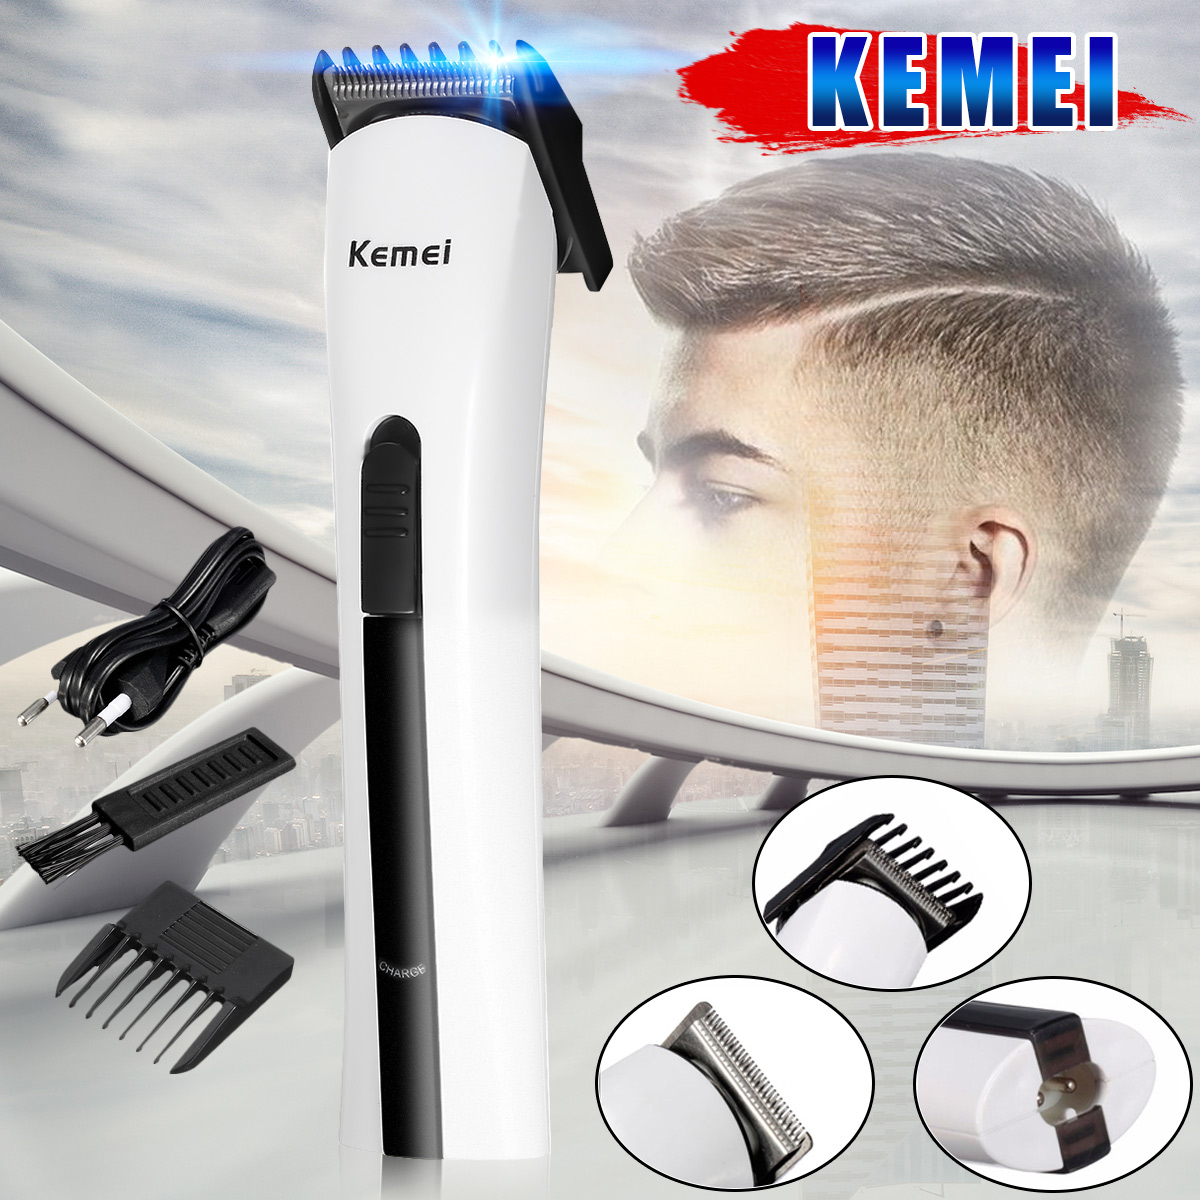 Kemei KM-2516 Rechargeable Hair Trimmer Men Electric Shaver Razor Beard Hair Clipper Cutting Trimmer Grooming kemei km 680a 5in1 rechargeable electric hair shaver clipper cutting machine razor barber beard hair trimmer haircut cordless